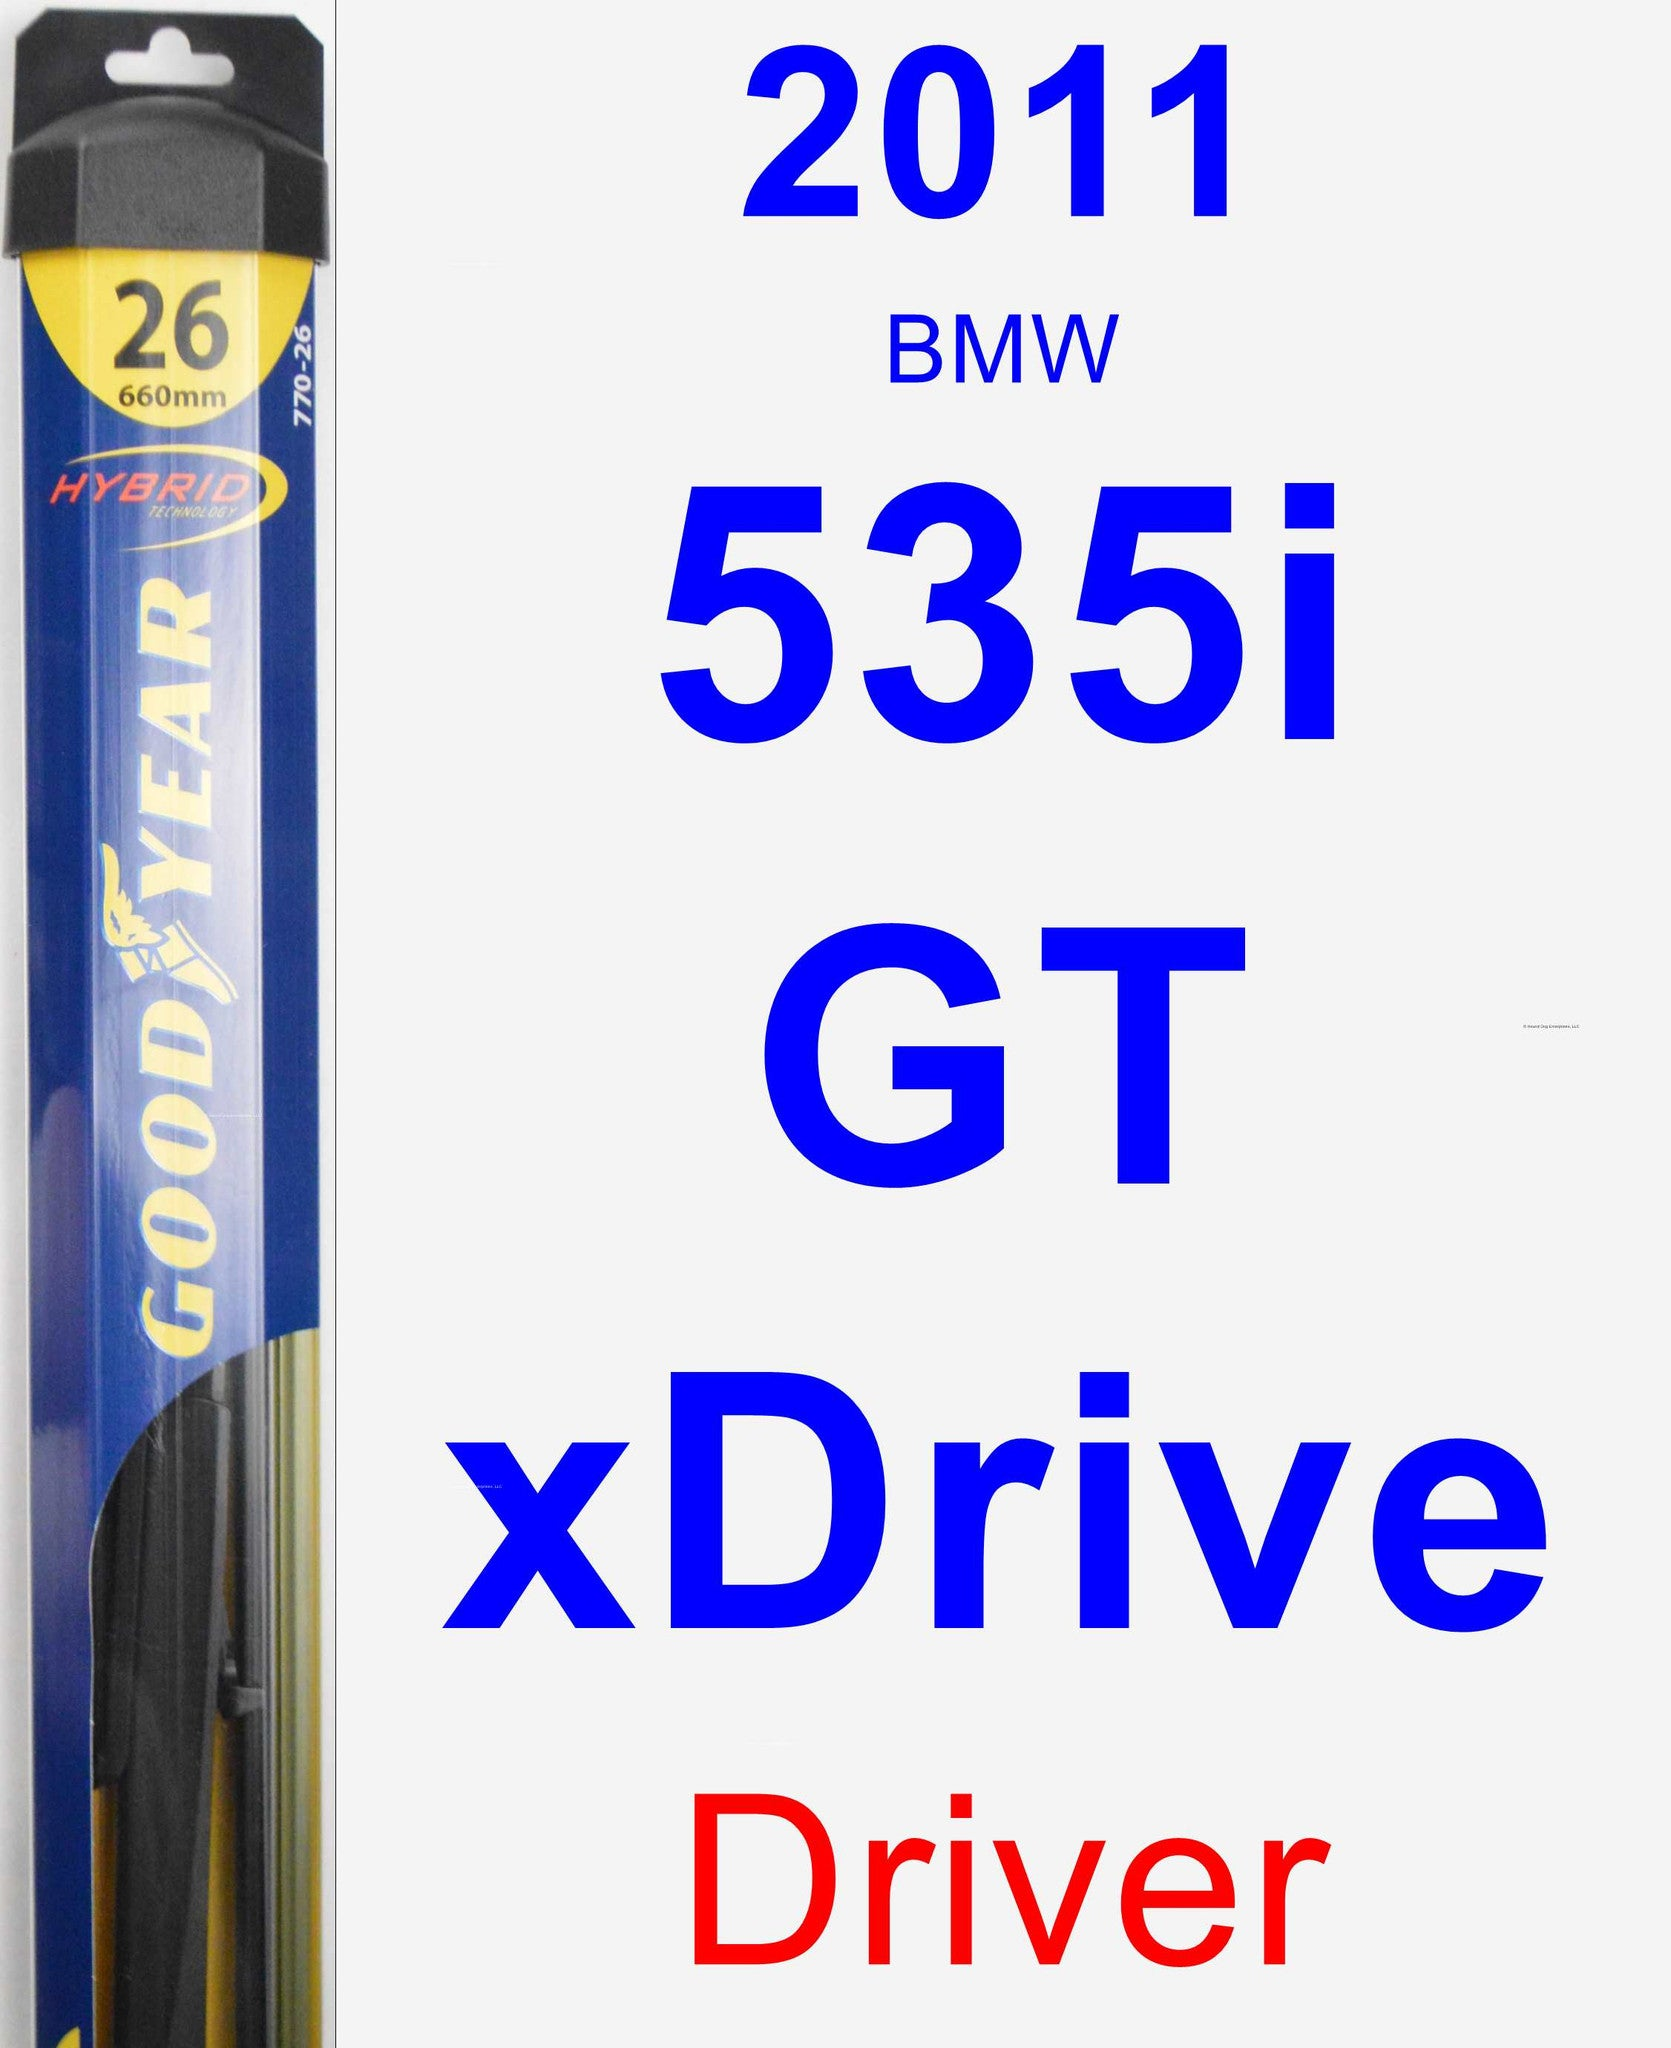 Driver Wiper Blade for 2011 BMW 535i GT xDrive - Hybrid